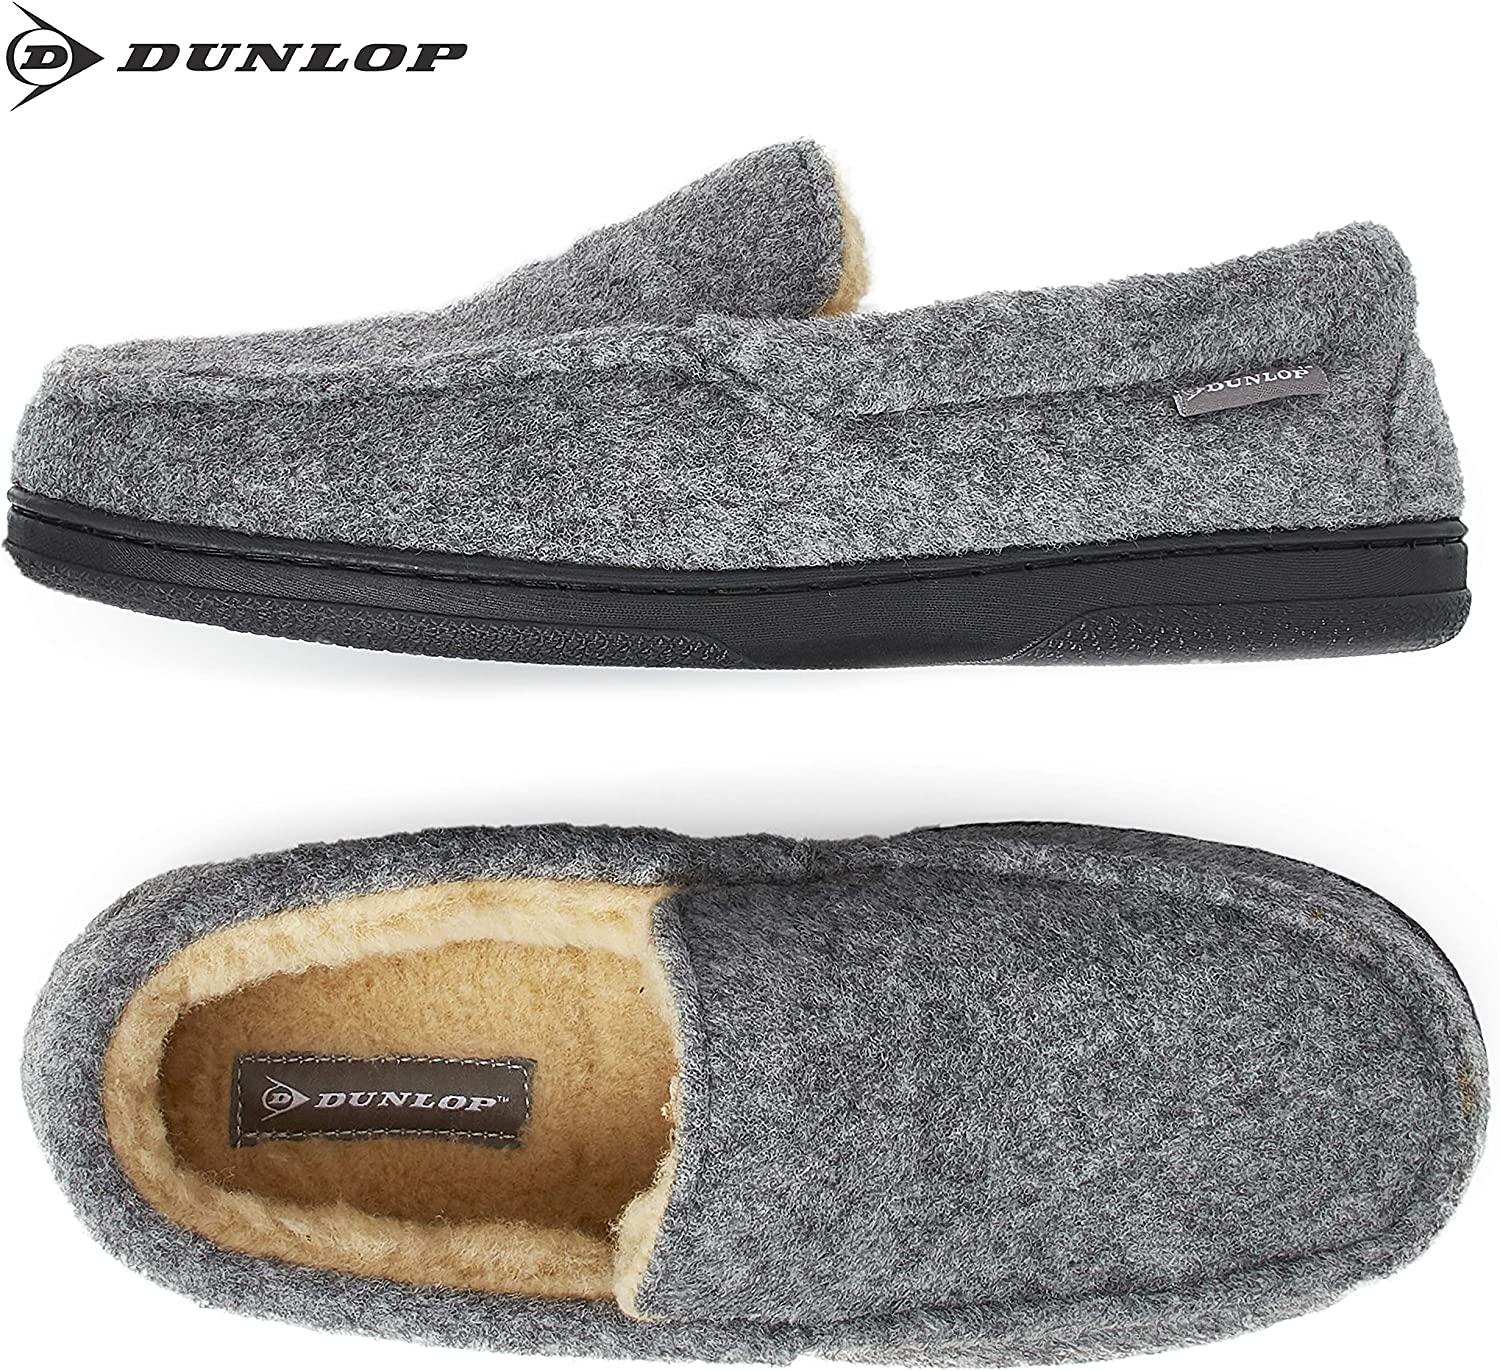 Gifts for Men Moccasin Loafers Faux Sheepskin Slippers with Rubber Sole Breathable Indoor Outdoor Shoes Memory Foam Plush House Slippers Dunlop Moccasins Slippers Men